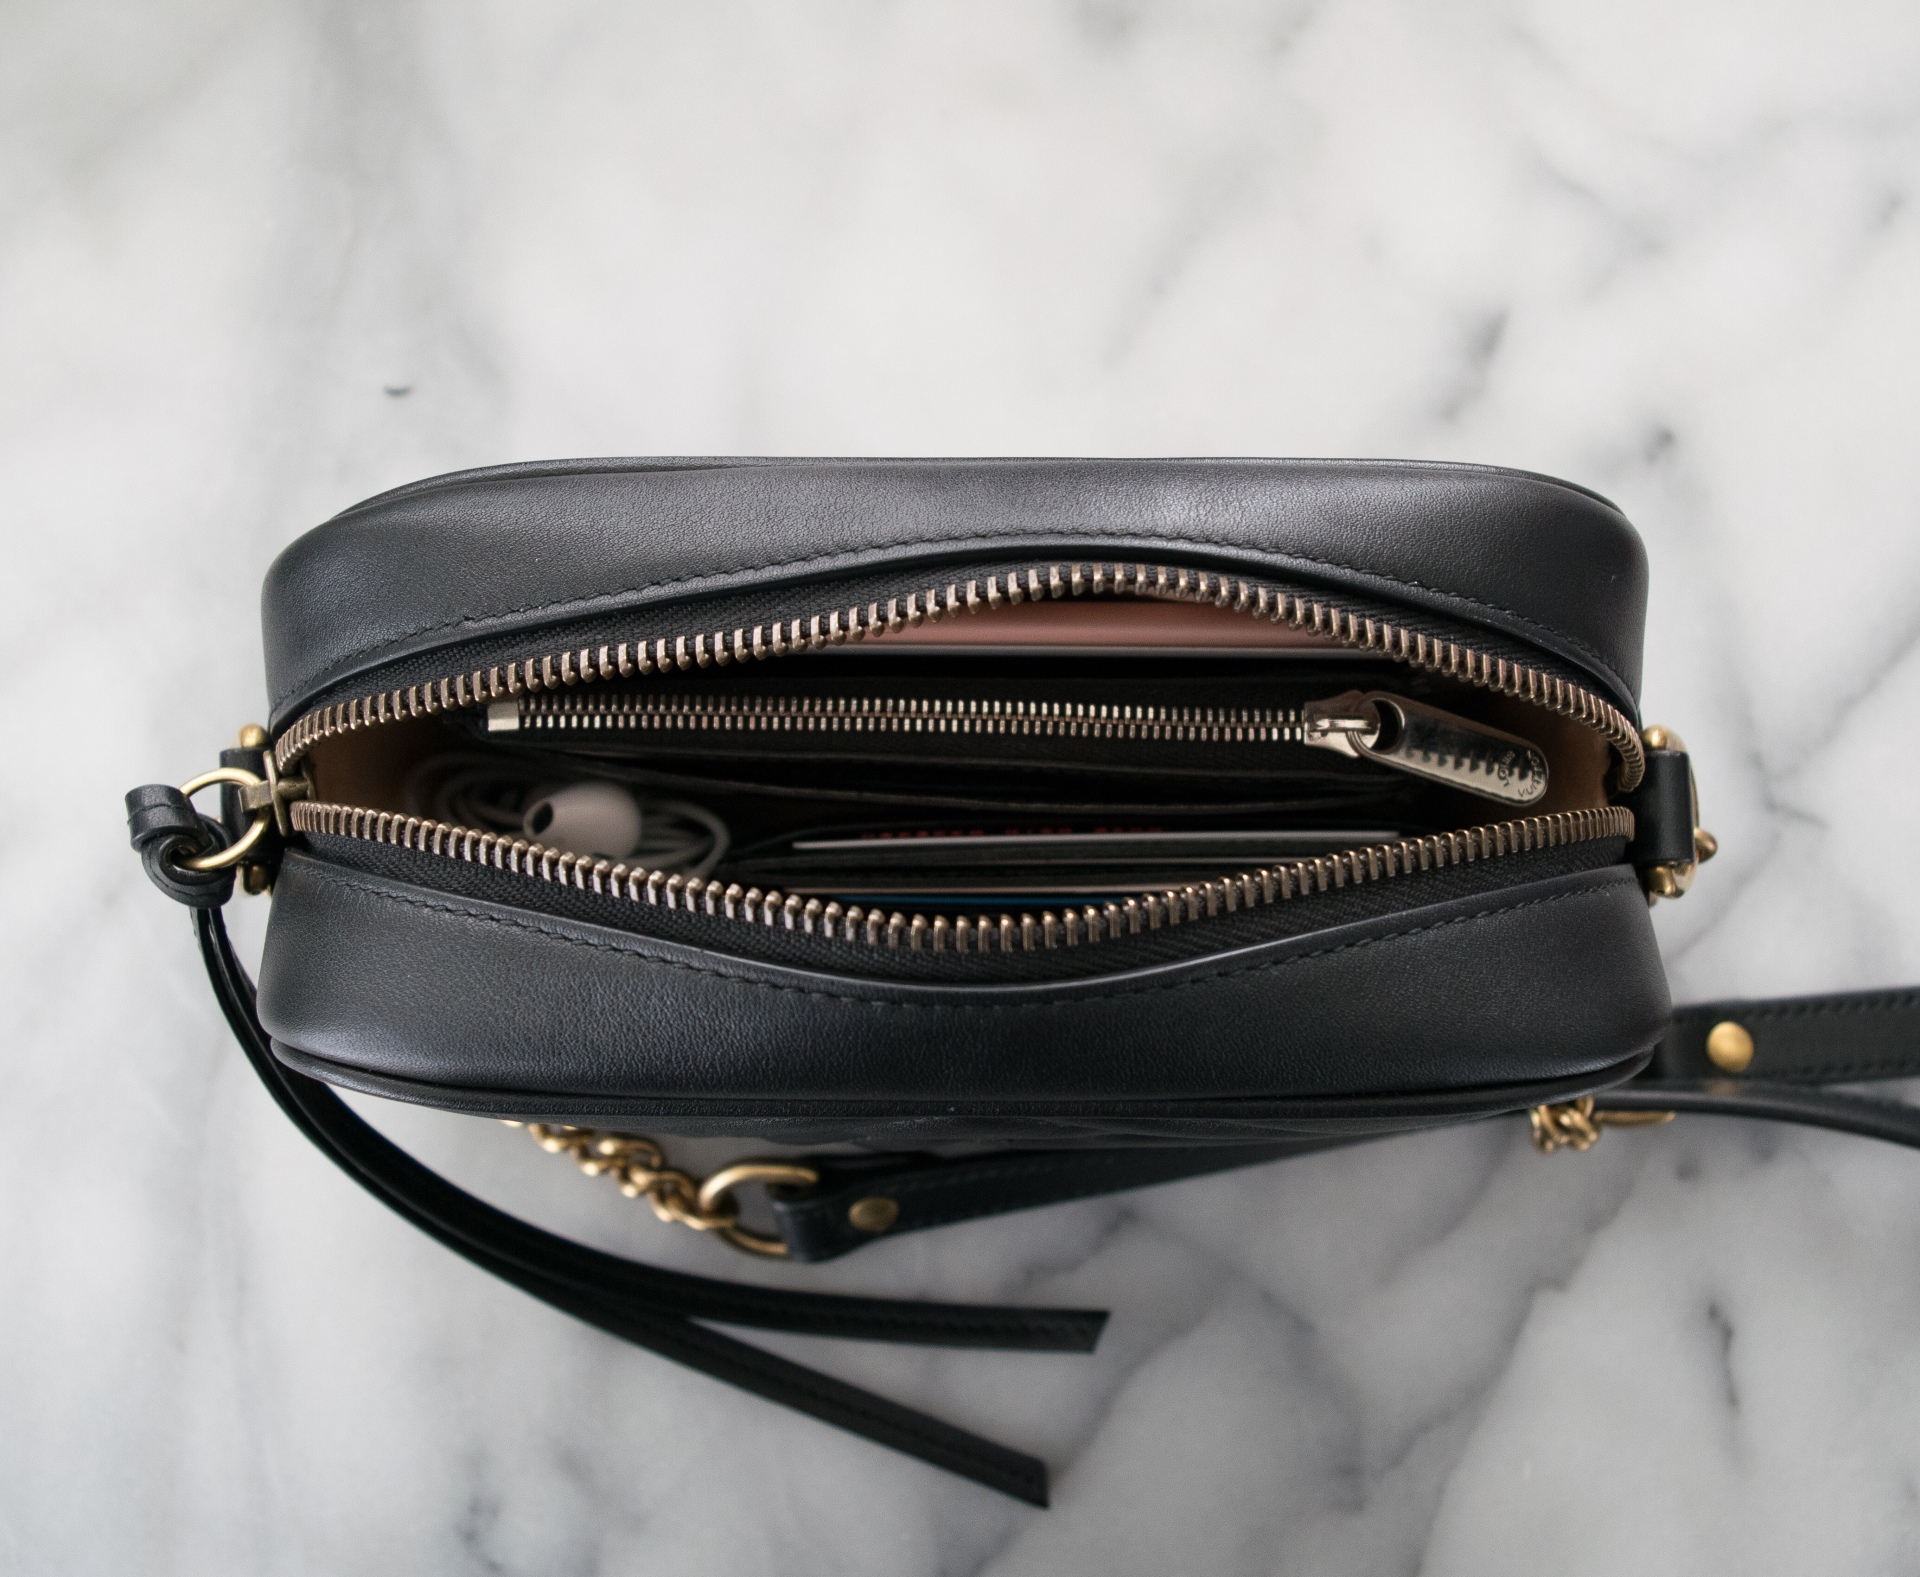 Bag Review Gucci Marmont Mini Camera Bag Coffee And